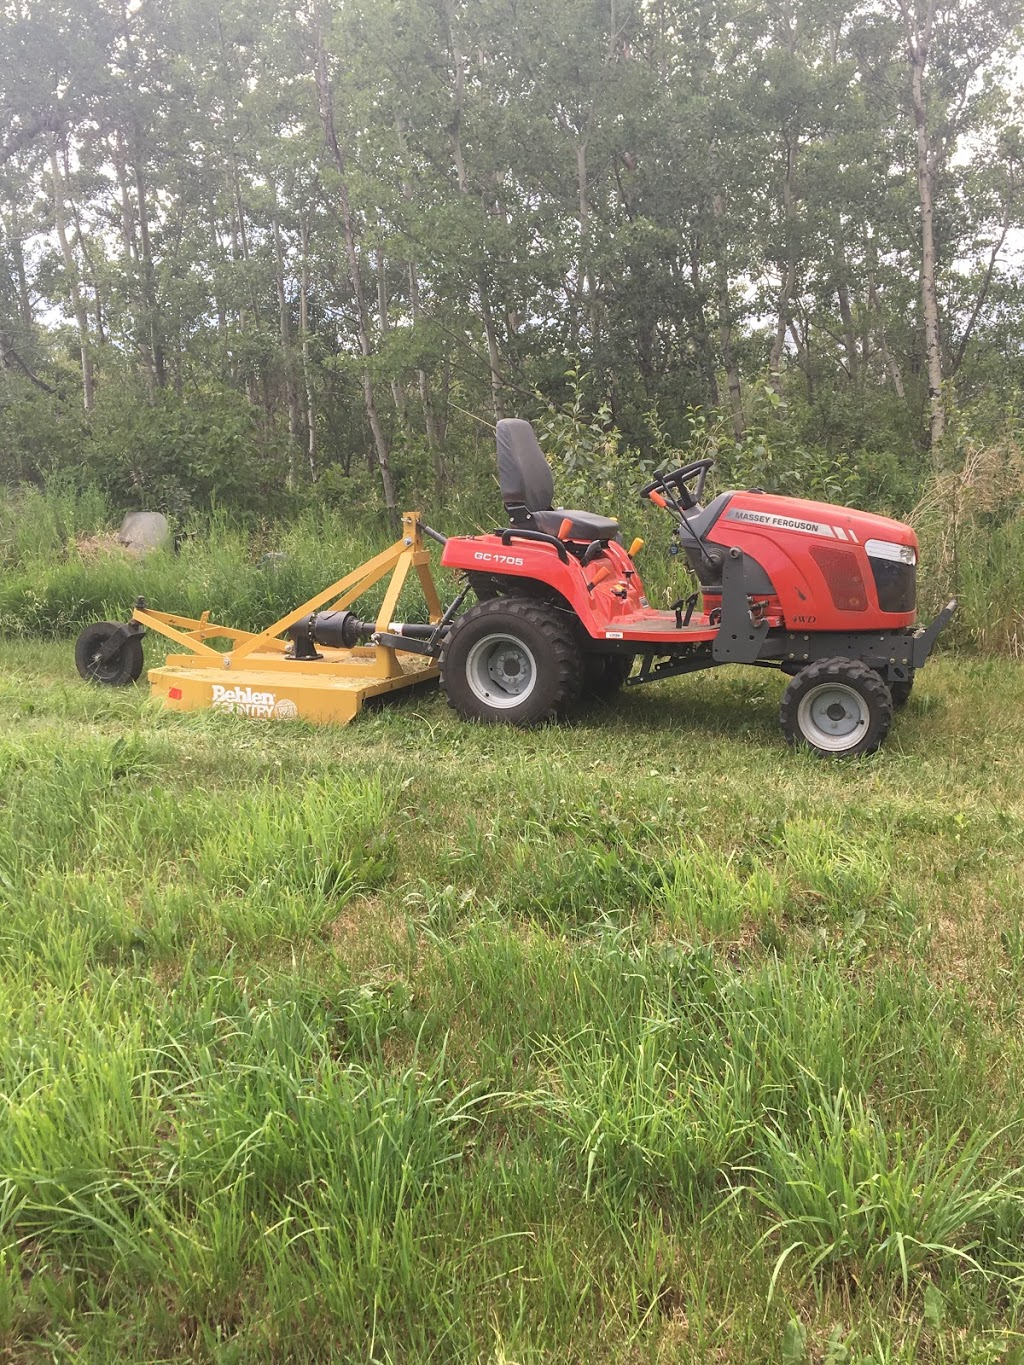 Bray-Meg Lawn Care Ltd | point of interest | 47 st, 57 Ave, Tofield, AB T0B 4J0, Canada | 7809209820 OR +1 780-920-9820